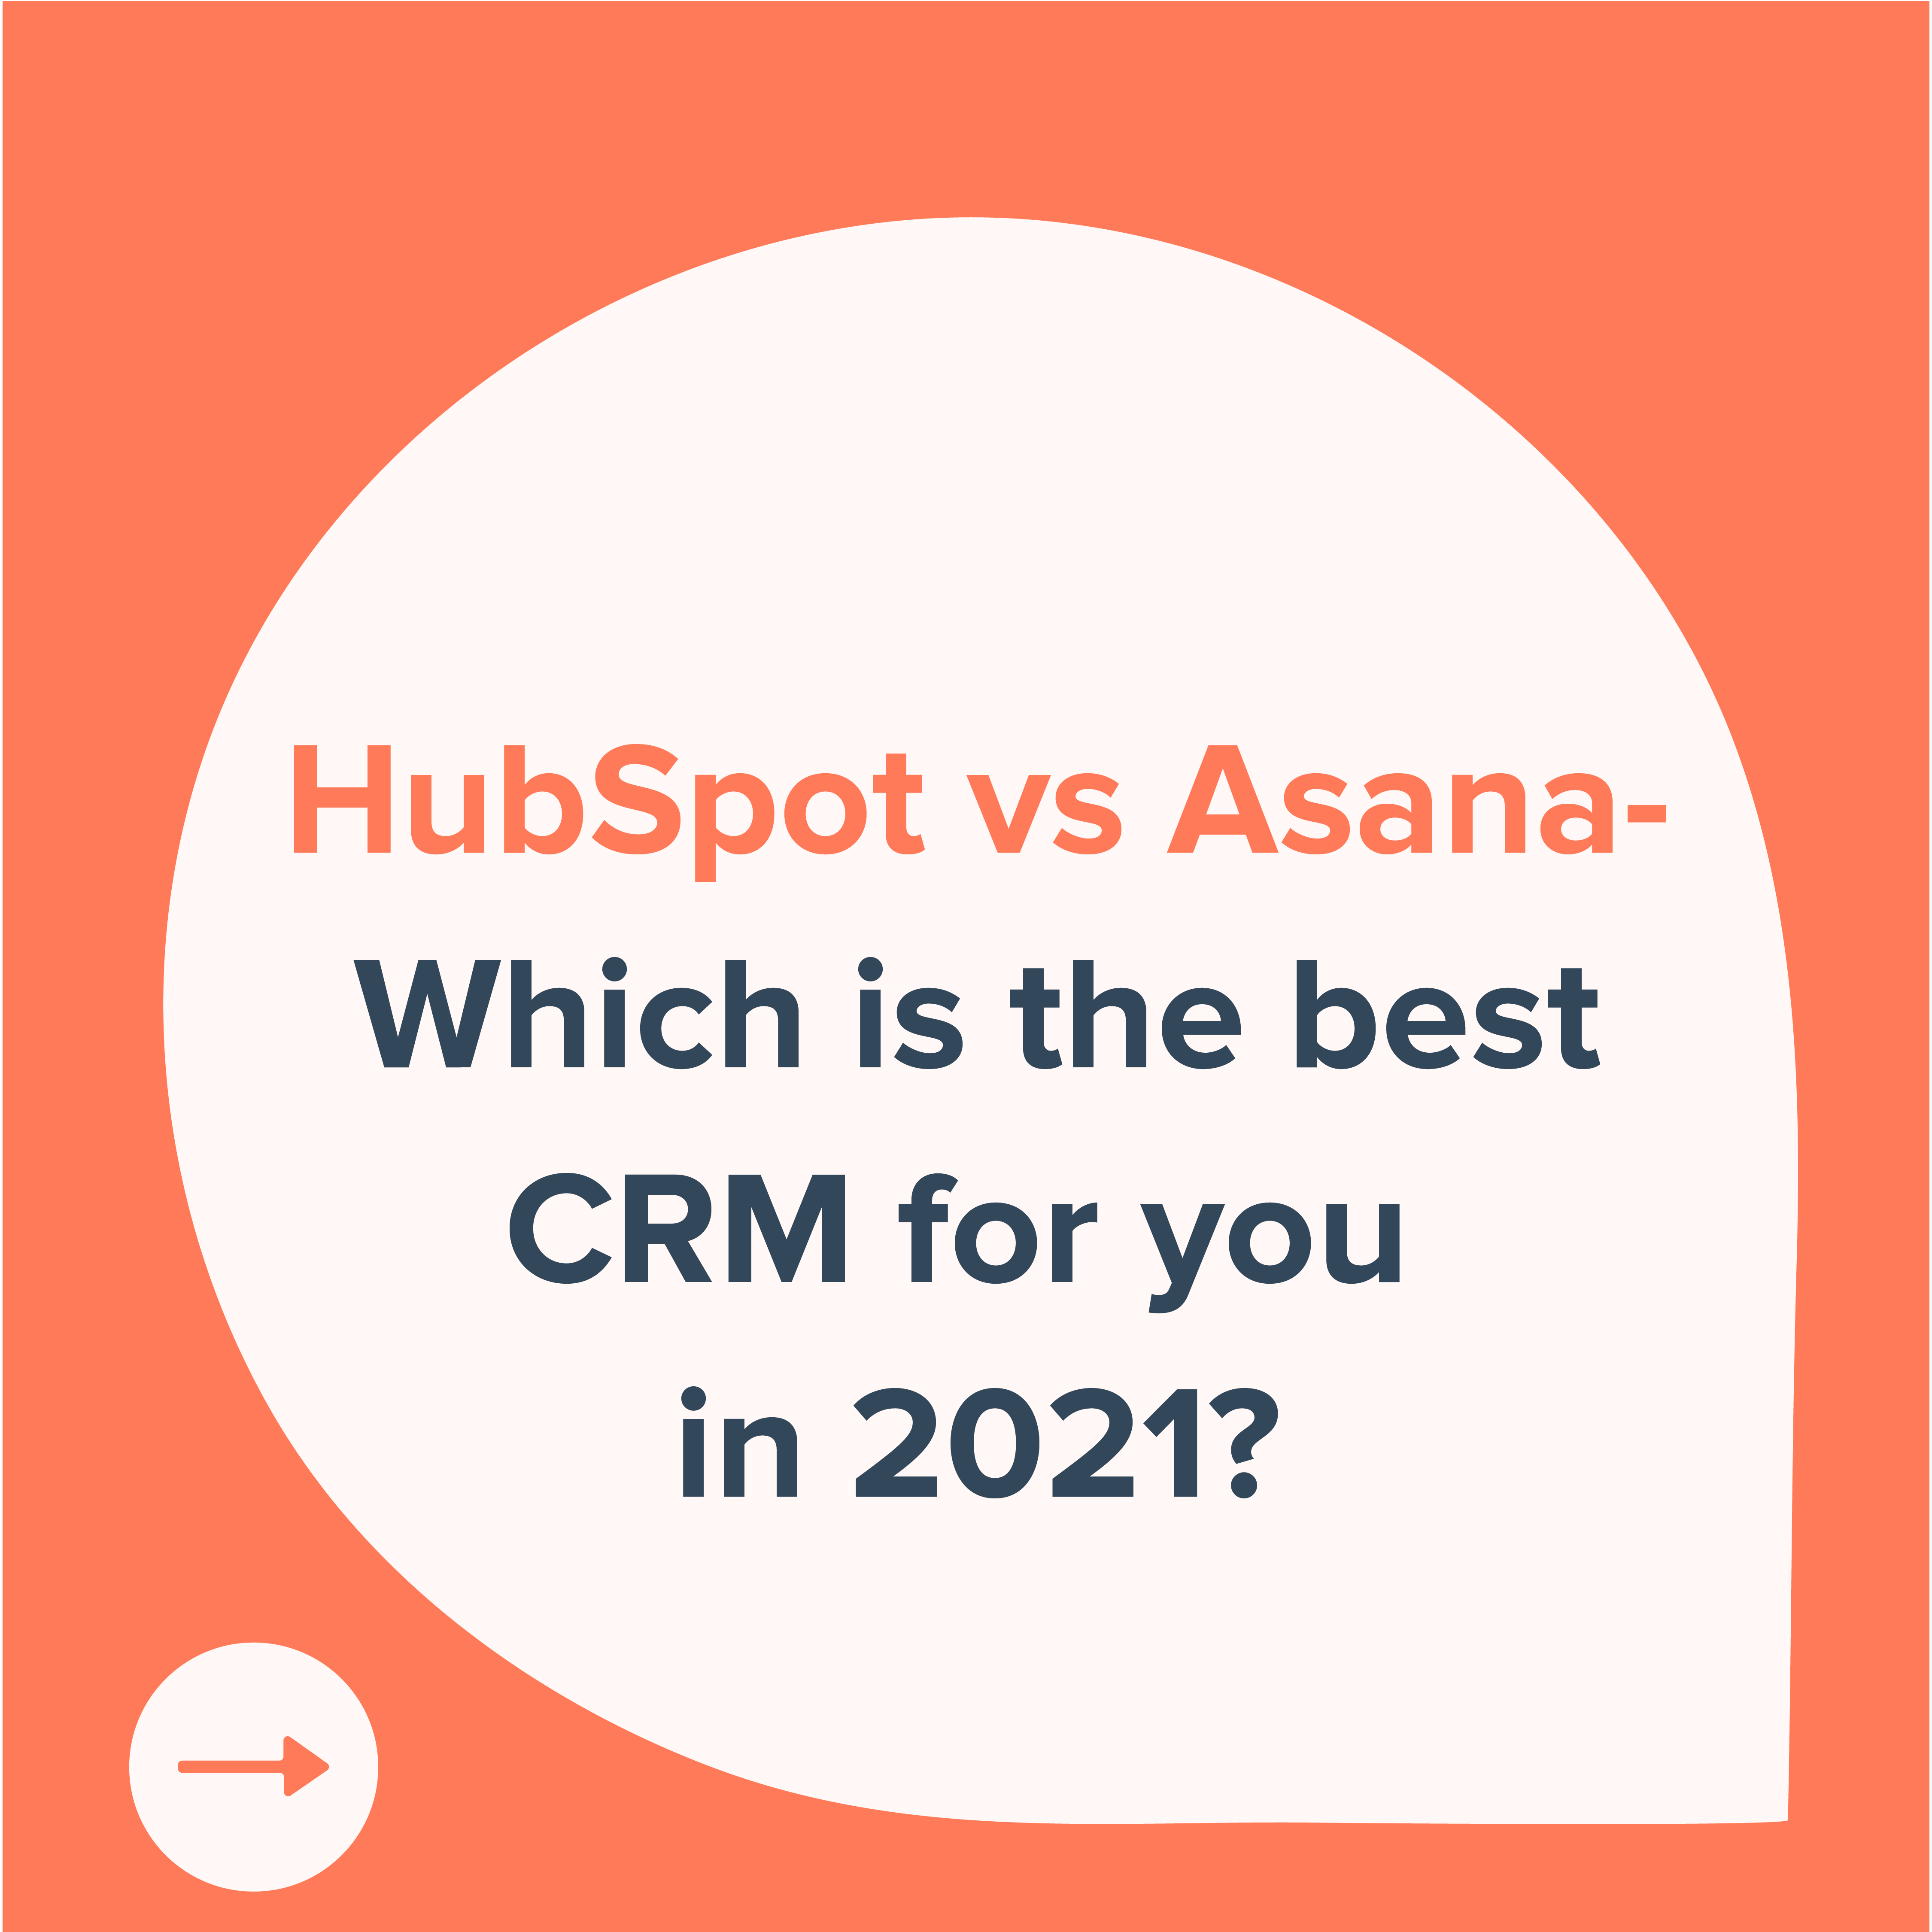 hubspot vs asana which is the best CRM for you in 2021-01